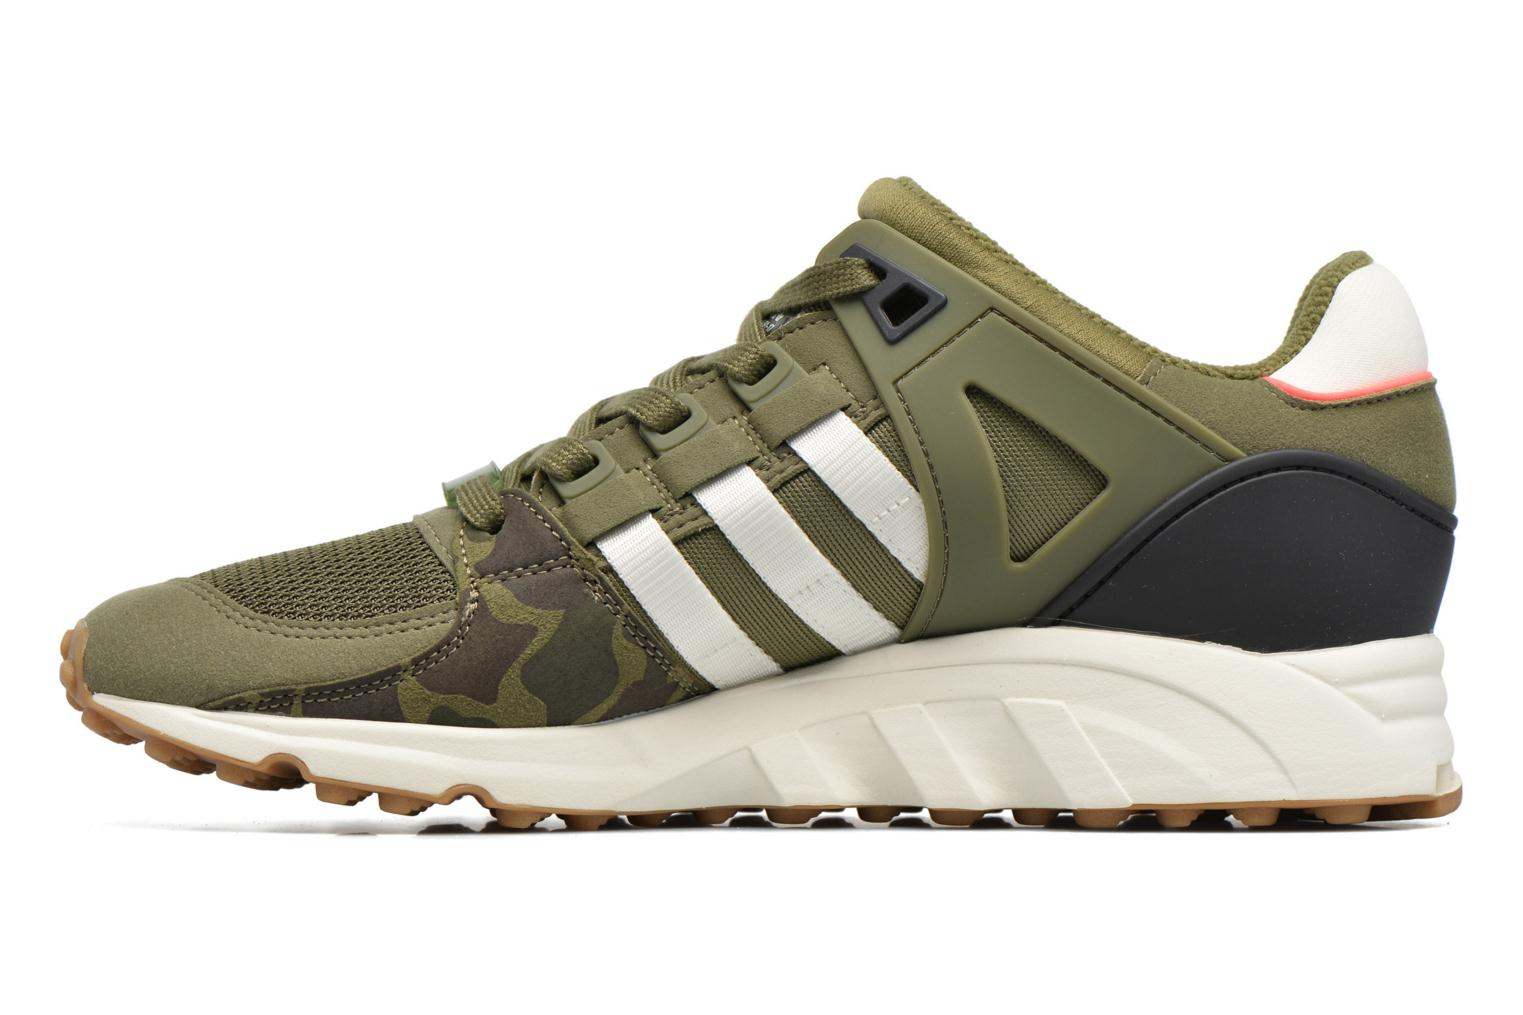 Eqt Support Rf Olicar/Blacas/Noiess